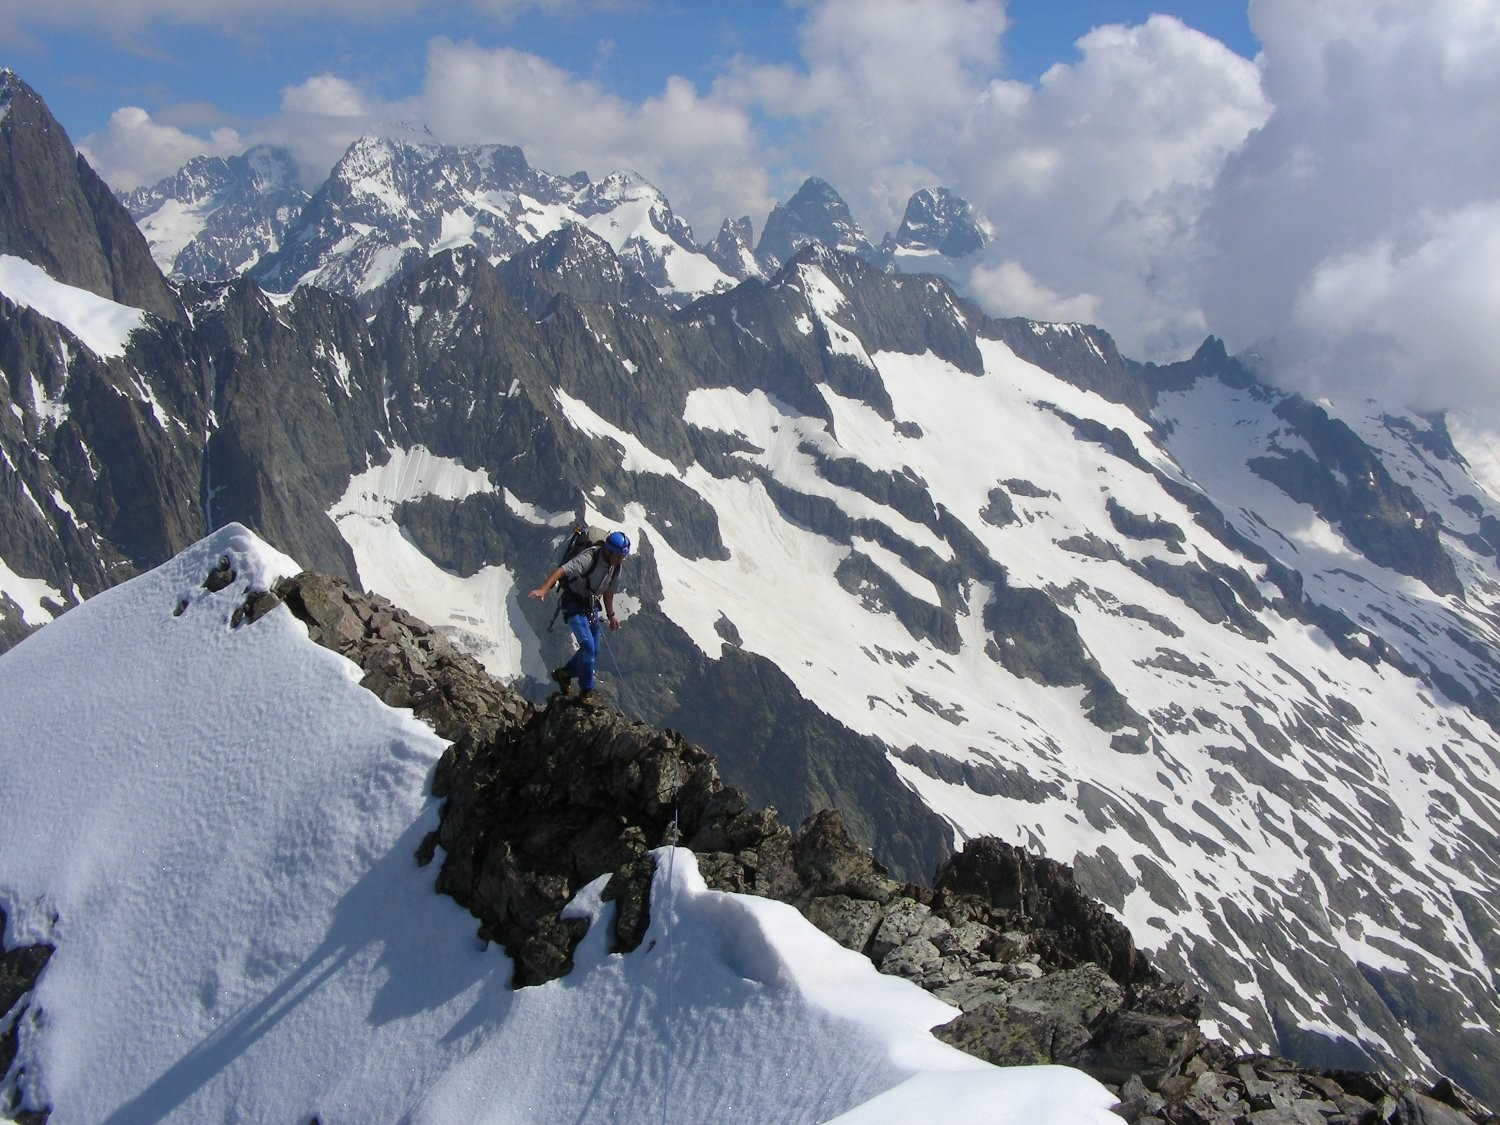 Reaching the summit ridge of the Jocelme